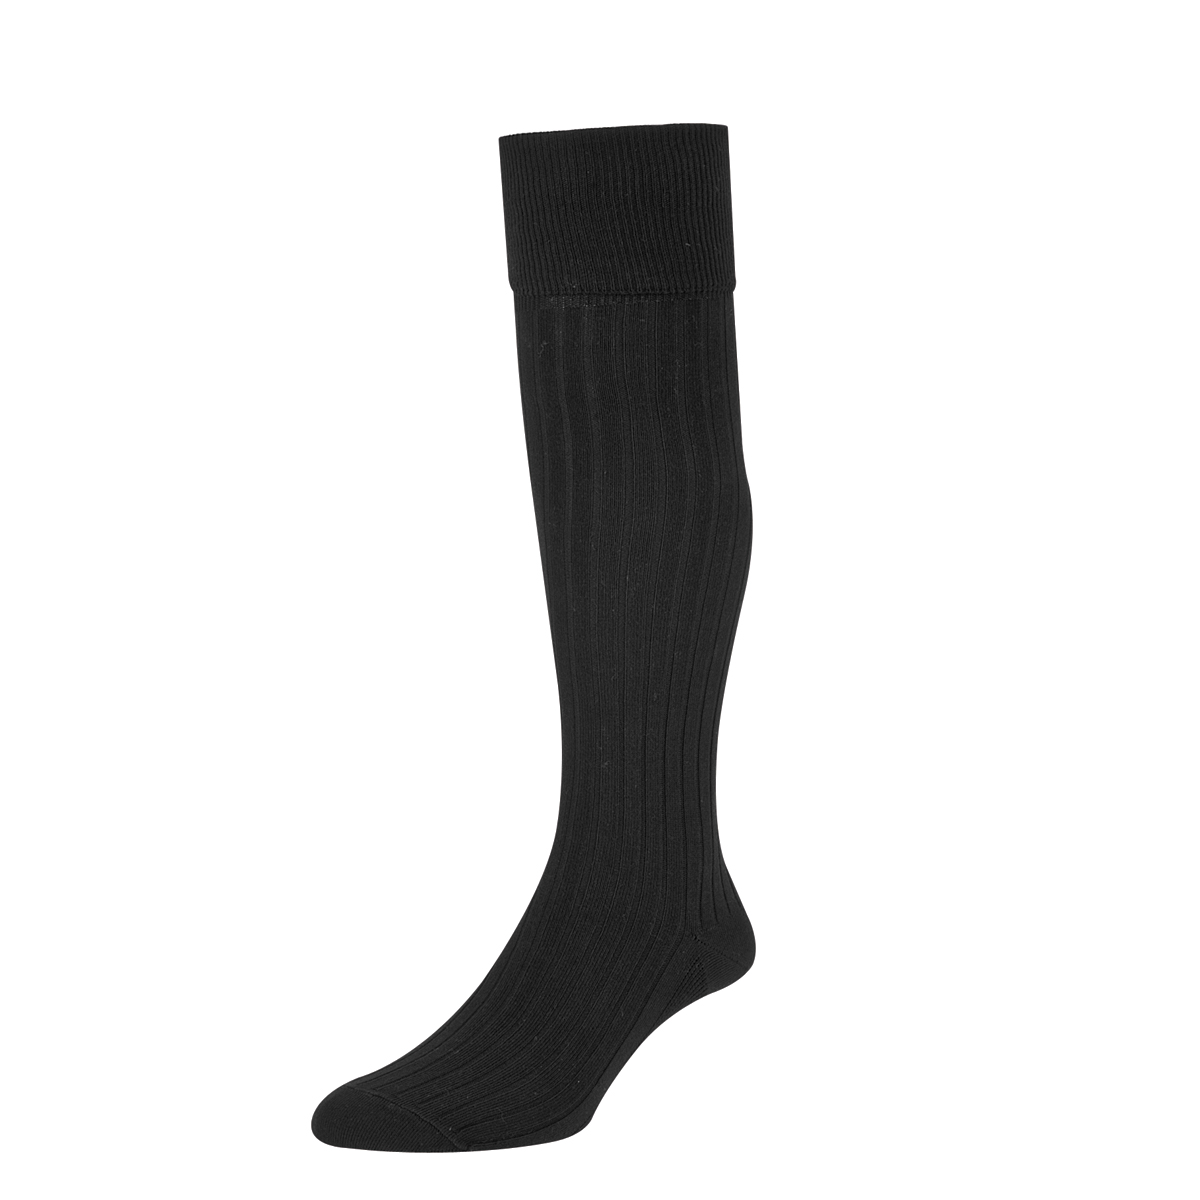 HJ Hall Mens Bermuda Golf Socks size 6-11 Black HJ166